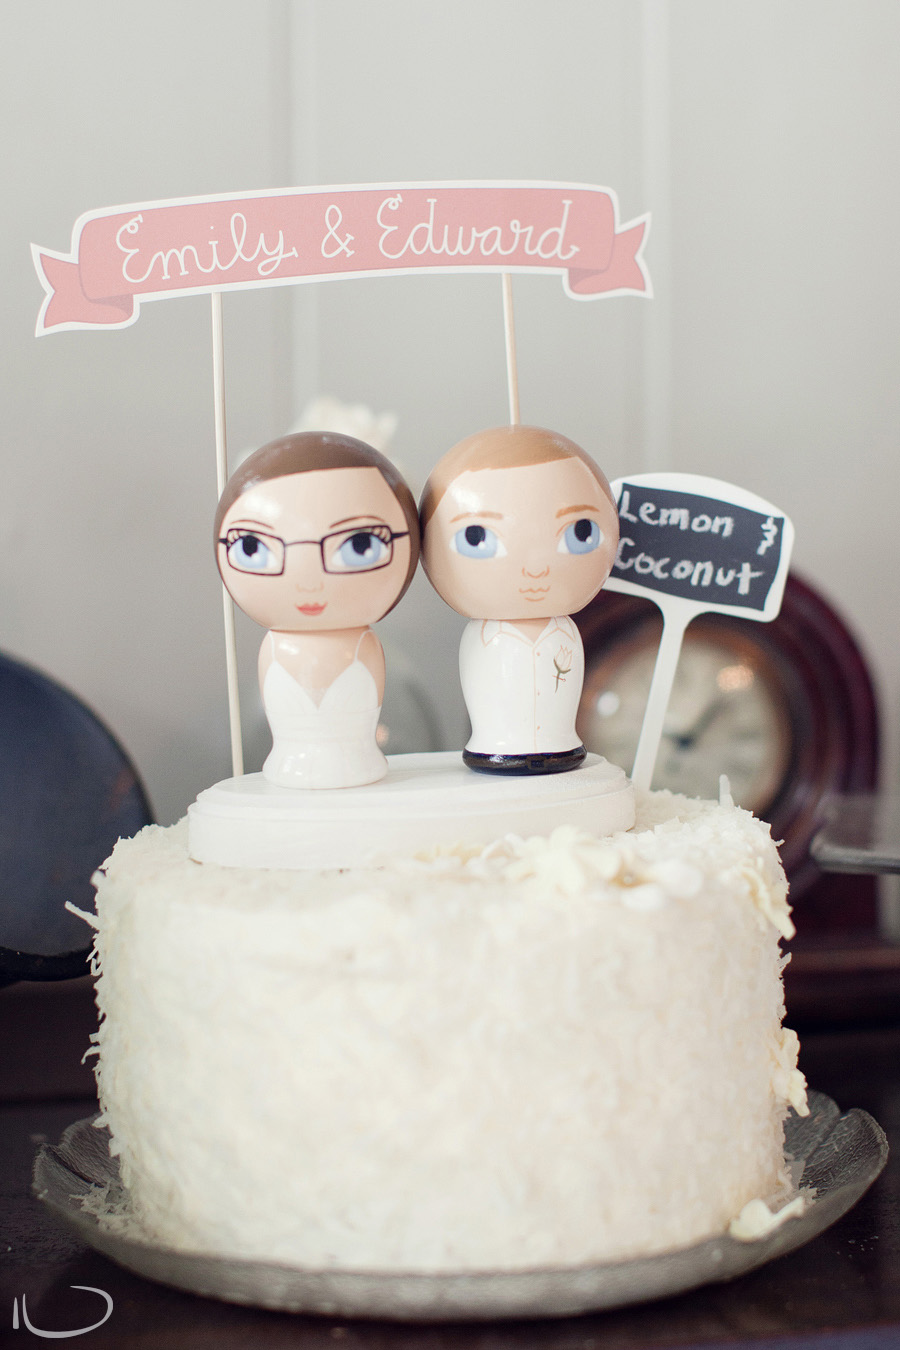 Summerlees Wedding Photographer: Wedding cake with awesome cake toppers